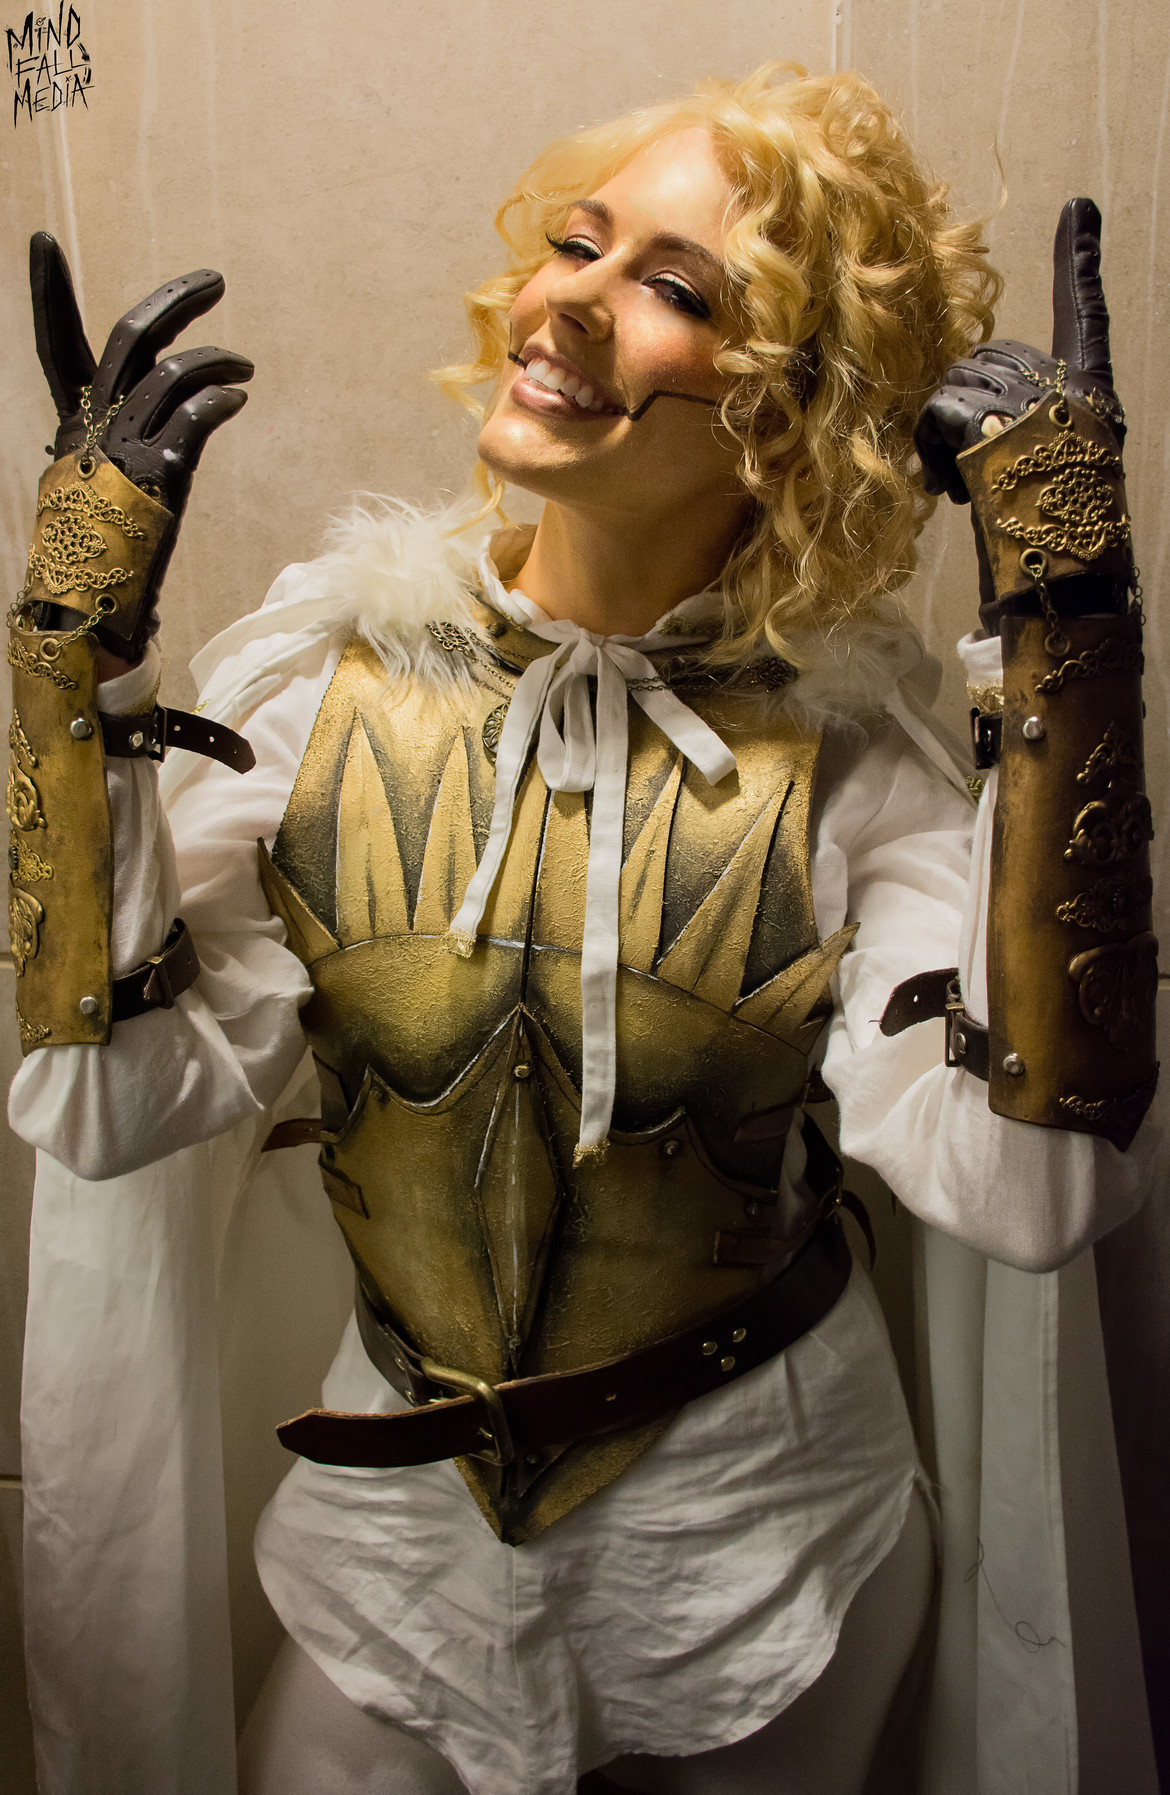 Anna Prosser Robinson as Evelyn from Dice, Camera, Action